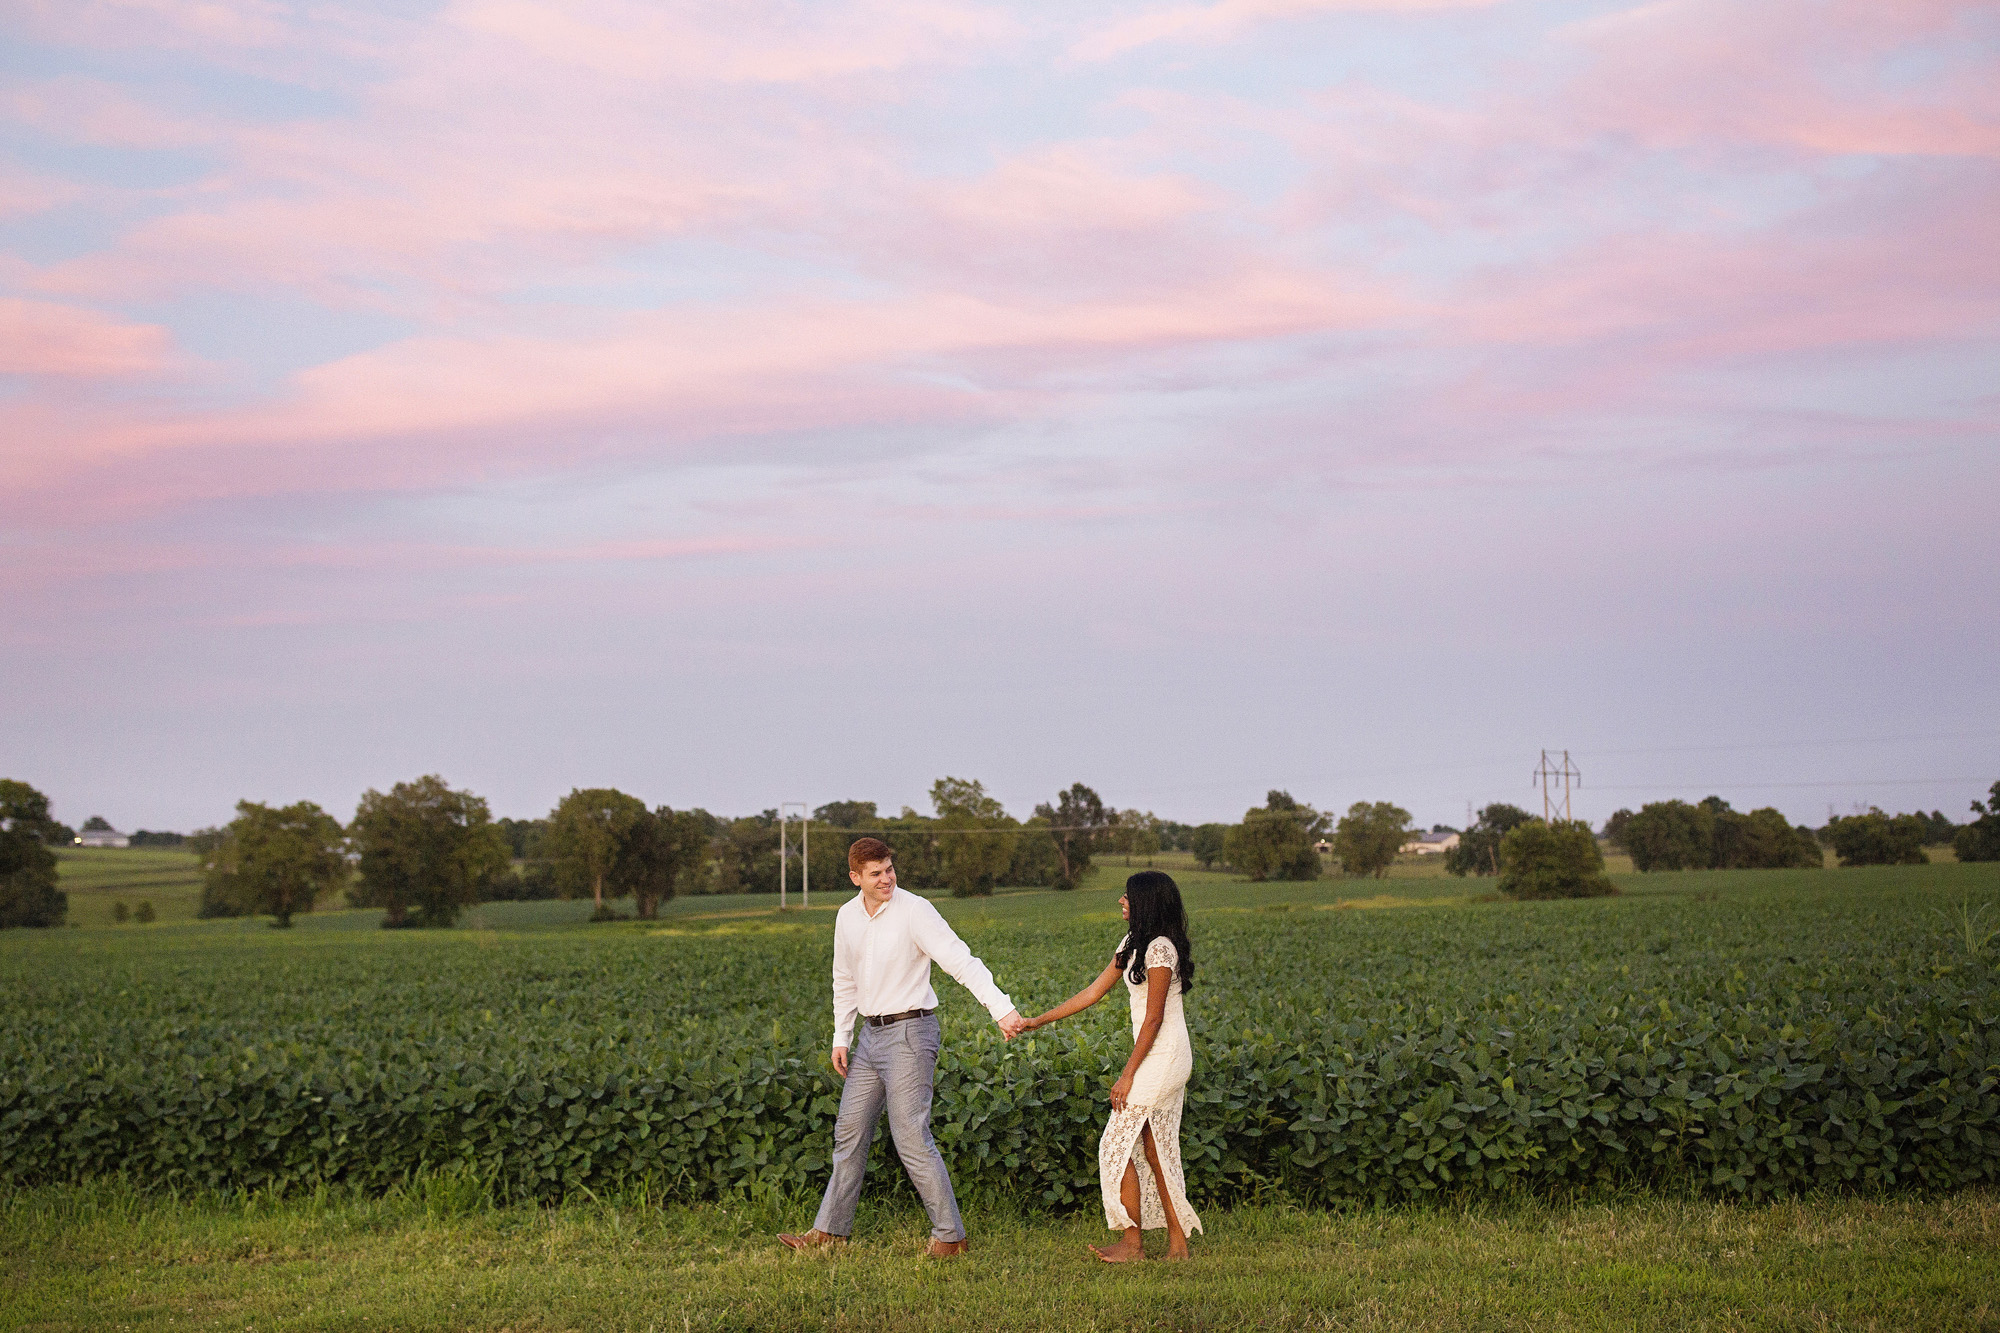 Seriously_Sabrina_Photography_Lexington_Midway_Kentucky_Engagement_Merefield_Sunflowers_Naz_and_Drew34.jpg